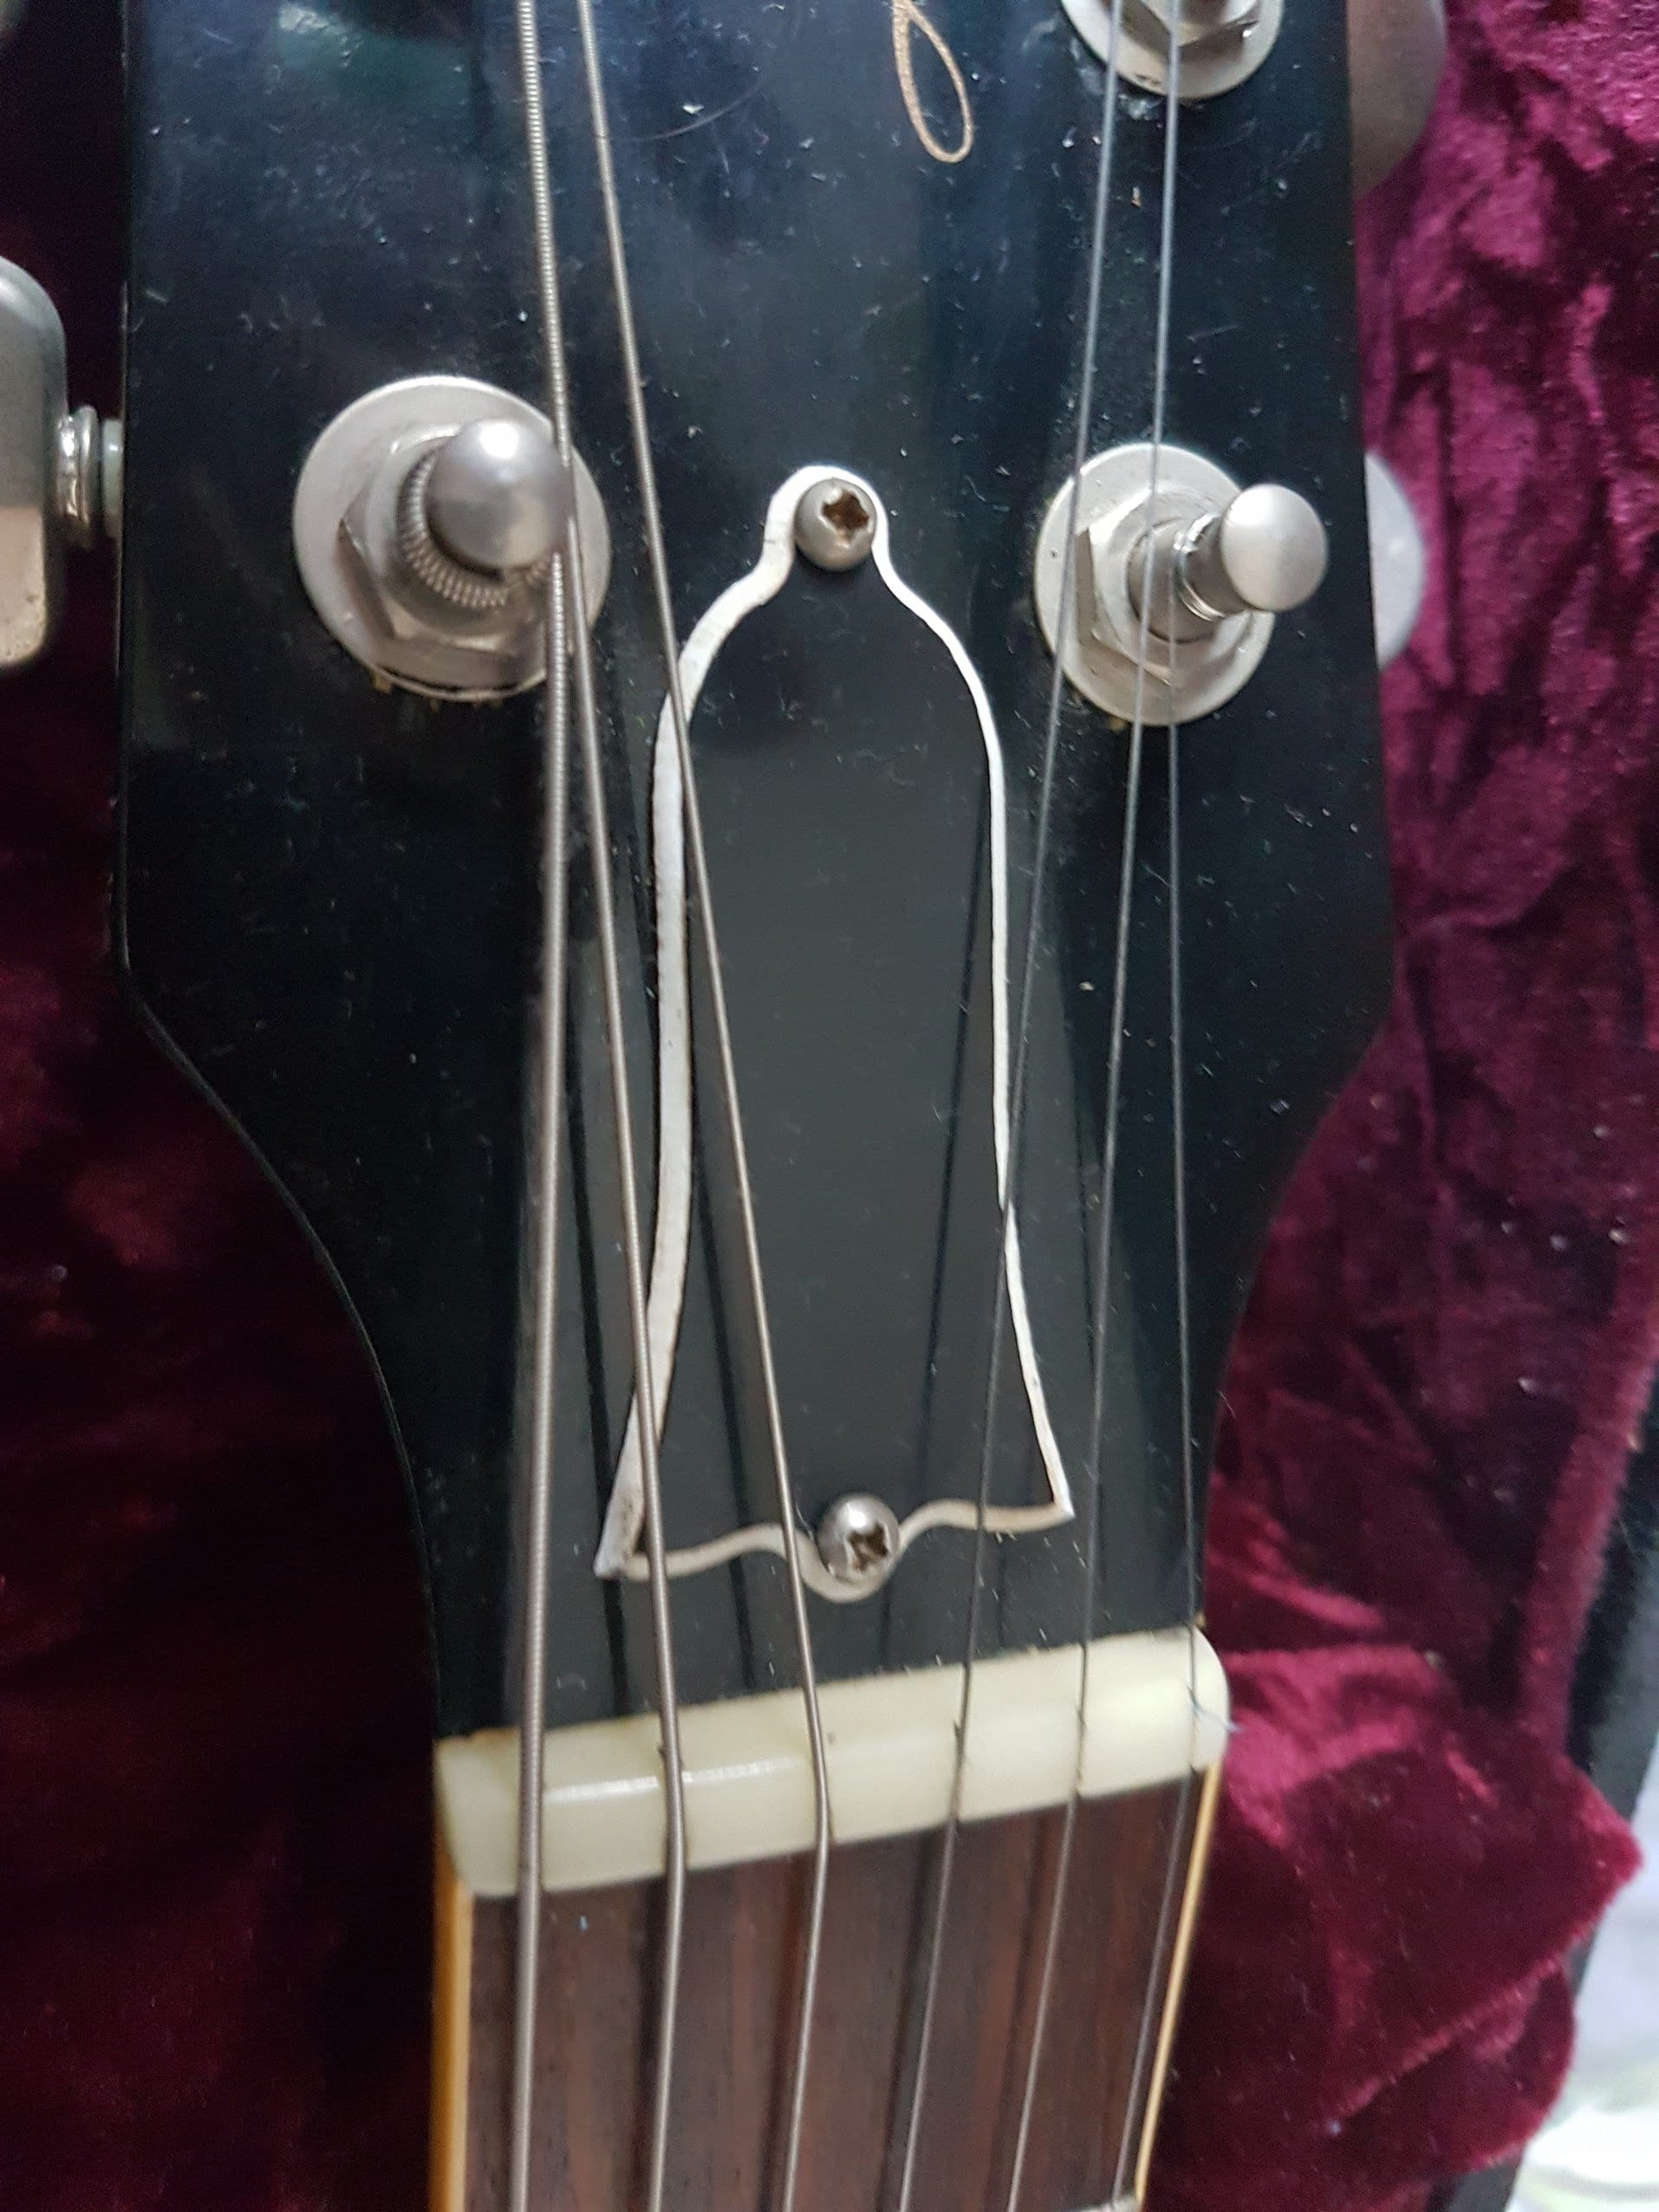 jef s tips for making your gibson les paul play like a dream part 2 truss rod. Black Bedroom Furniture Sets. Home Design Ideas